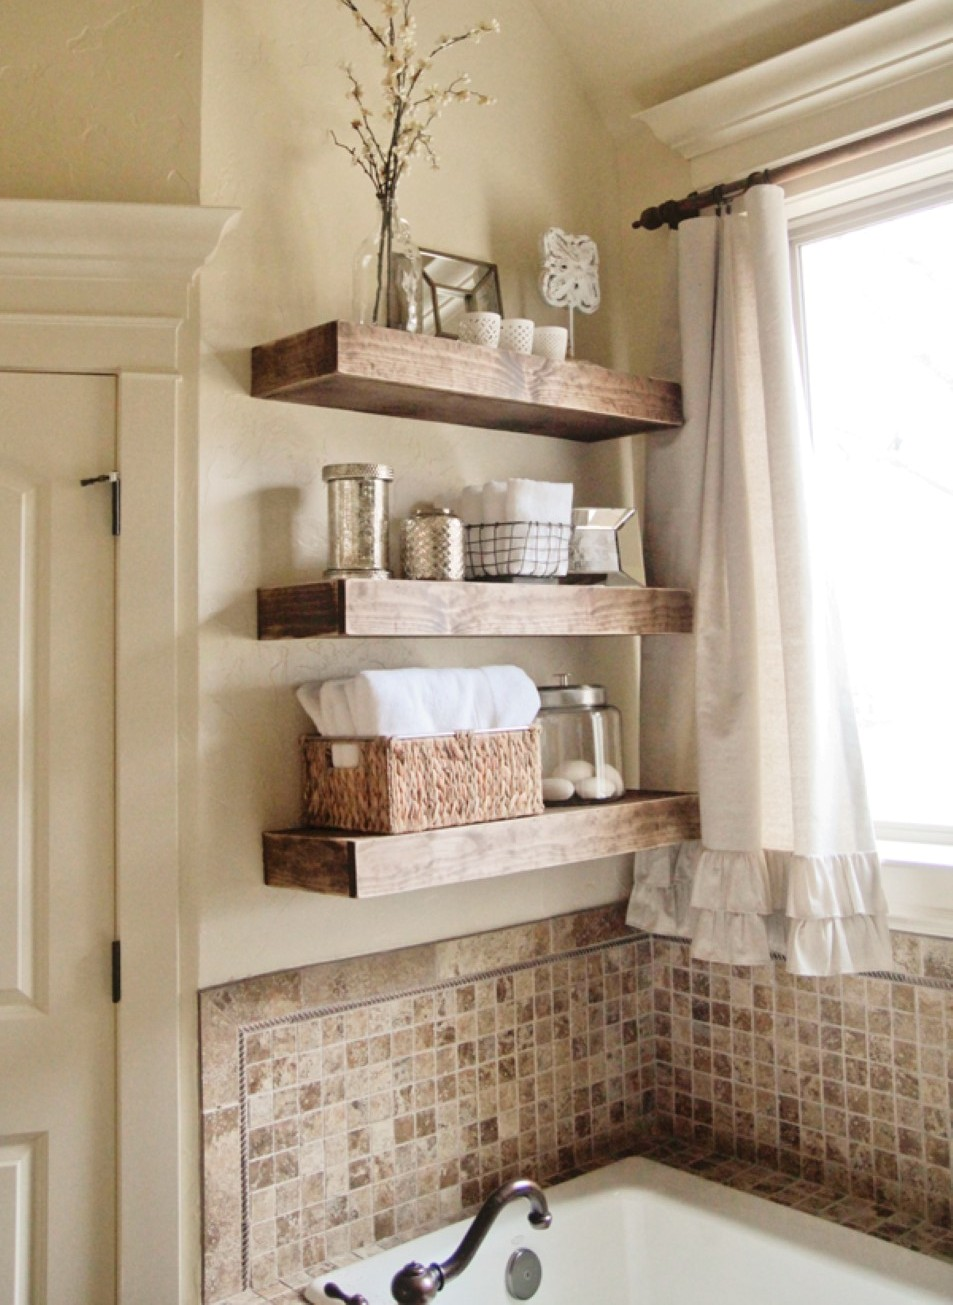 Best Bathroom Wall Shelving Idea to Adorn Your Room ...